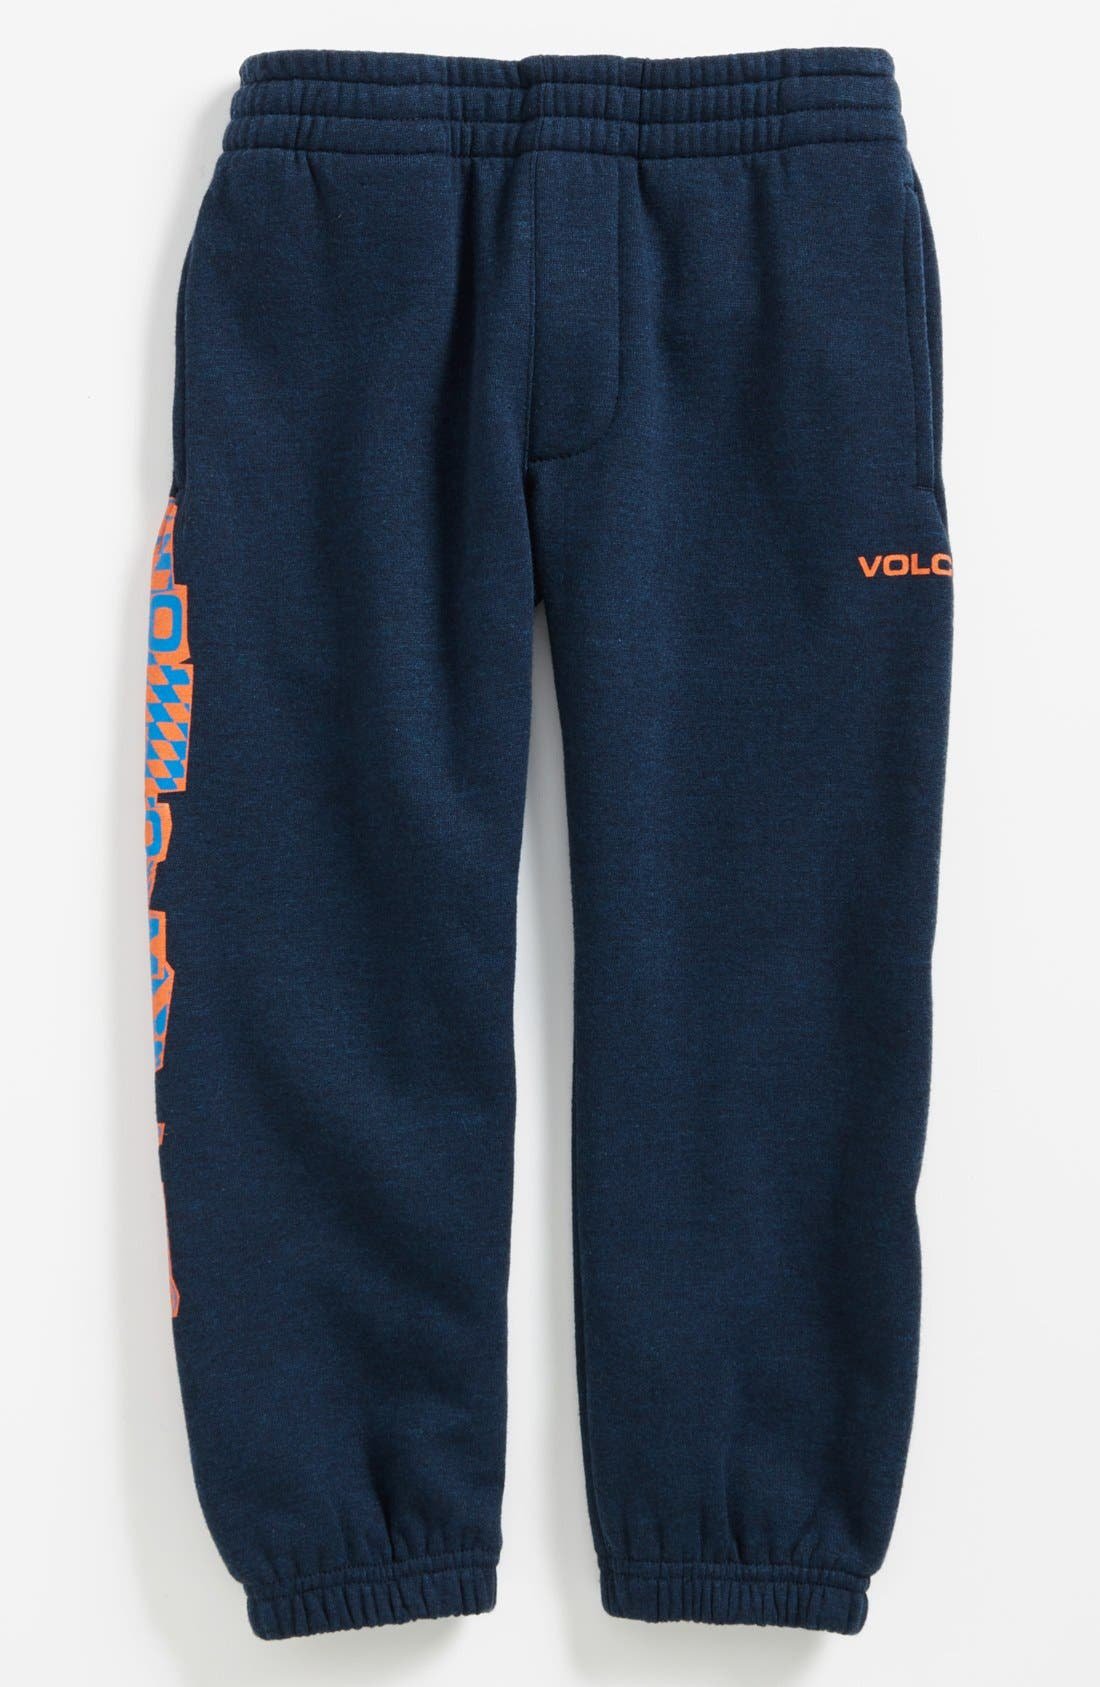 Main Image - Volcom 'Gigged' Sweatpants (Little Boys & Big Boys) (Online Only)